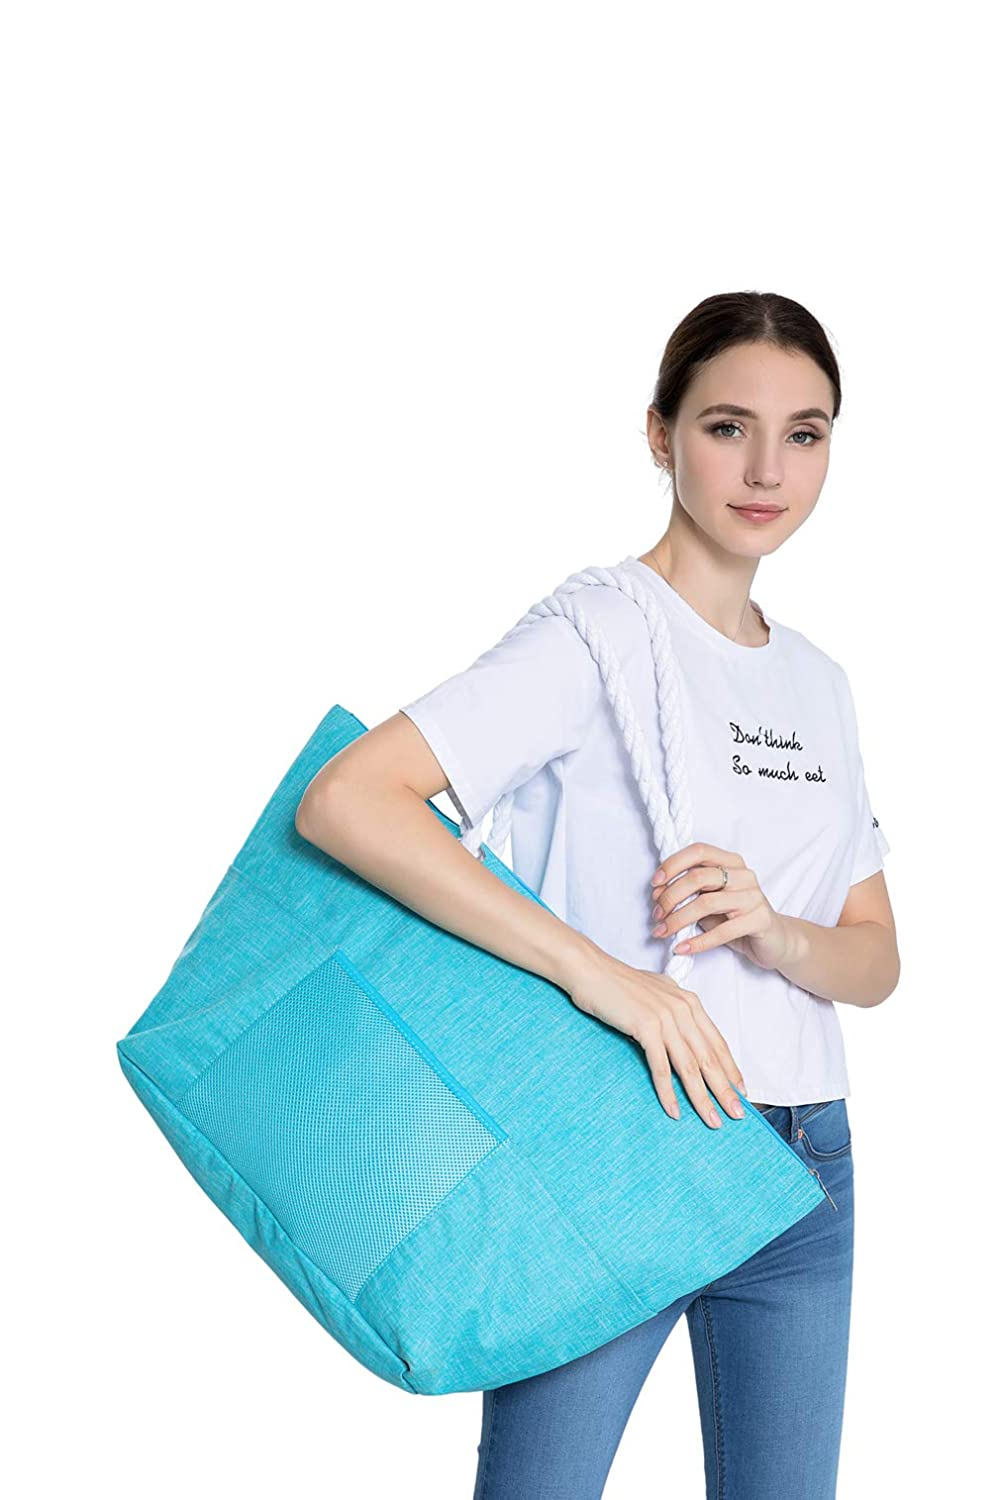 6 Pockets Outside Blue Extra Large Waterproof Beach Tote Bag with Soft Cotton Rope Top Zipper with 2 Inner Pockets